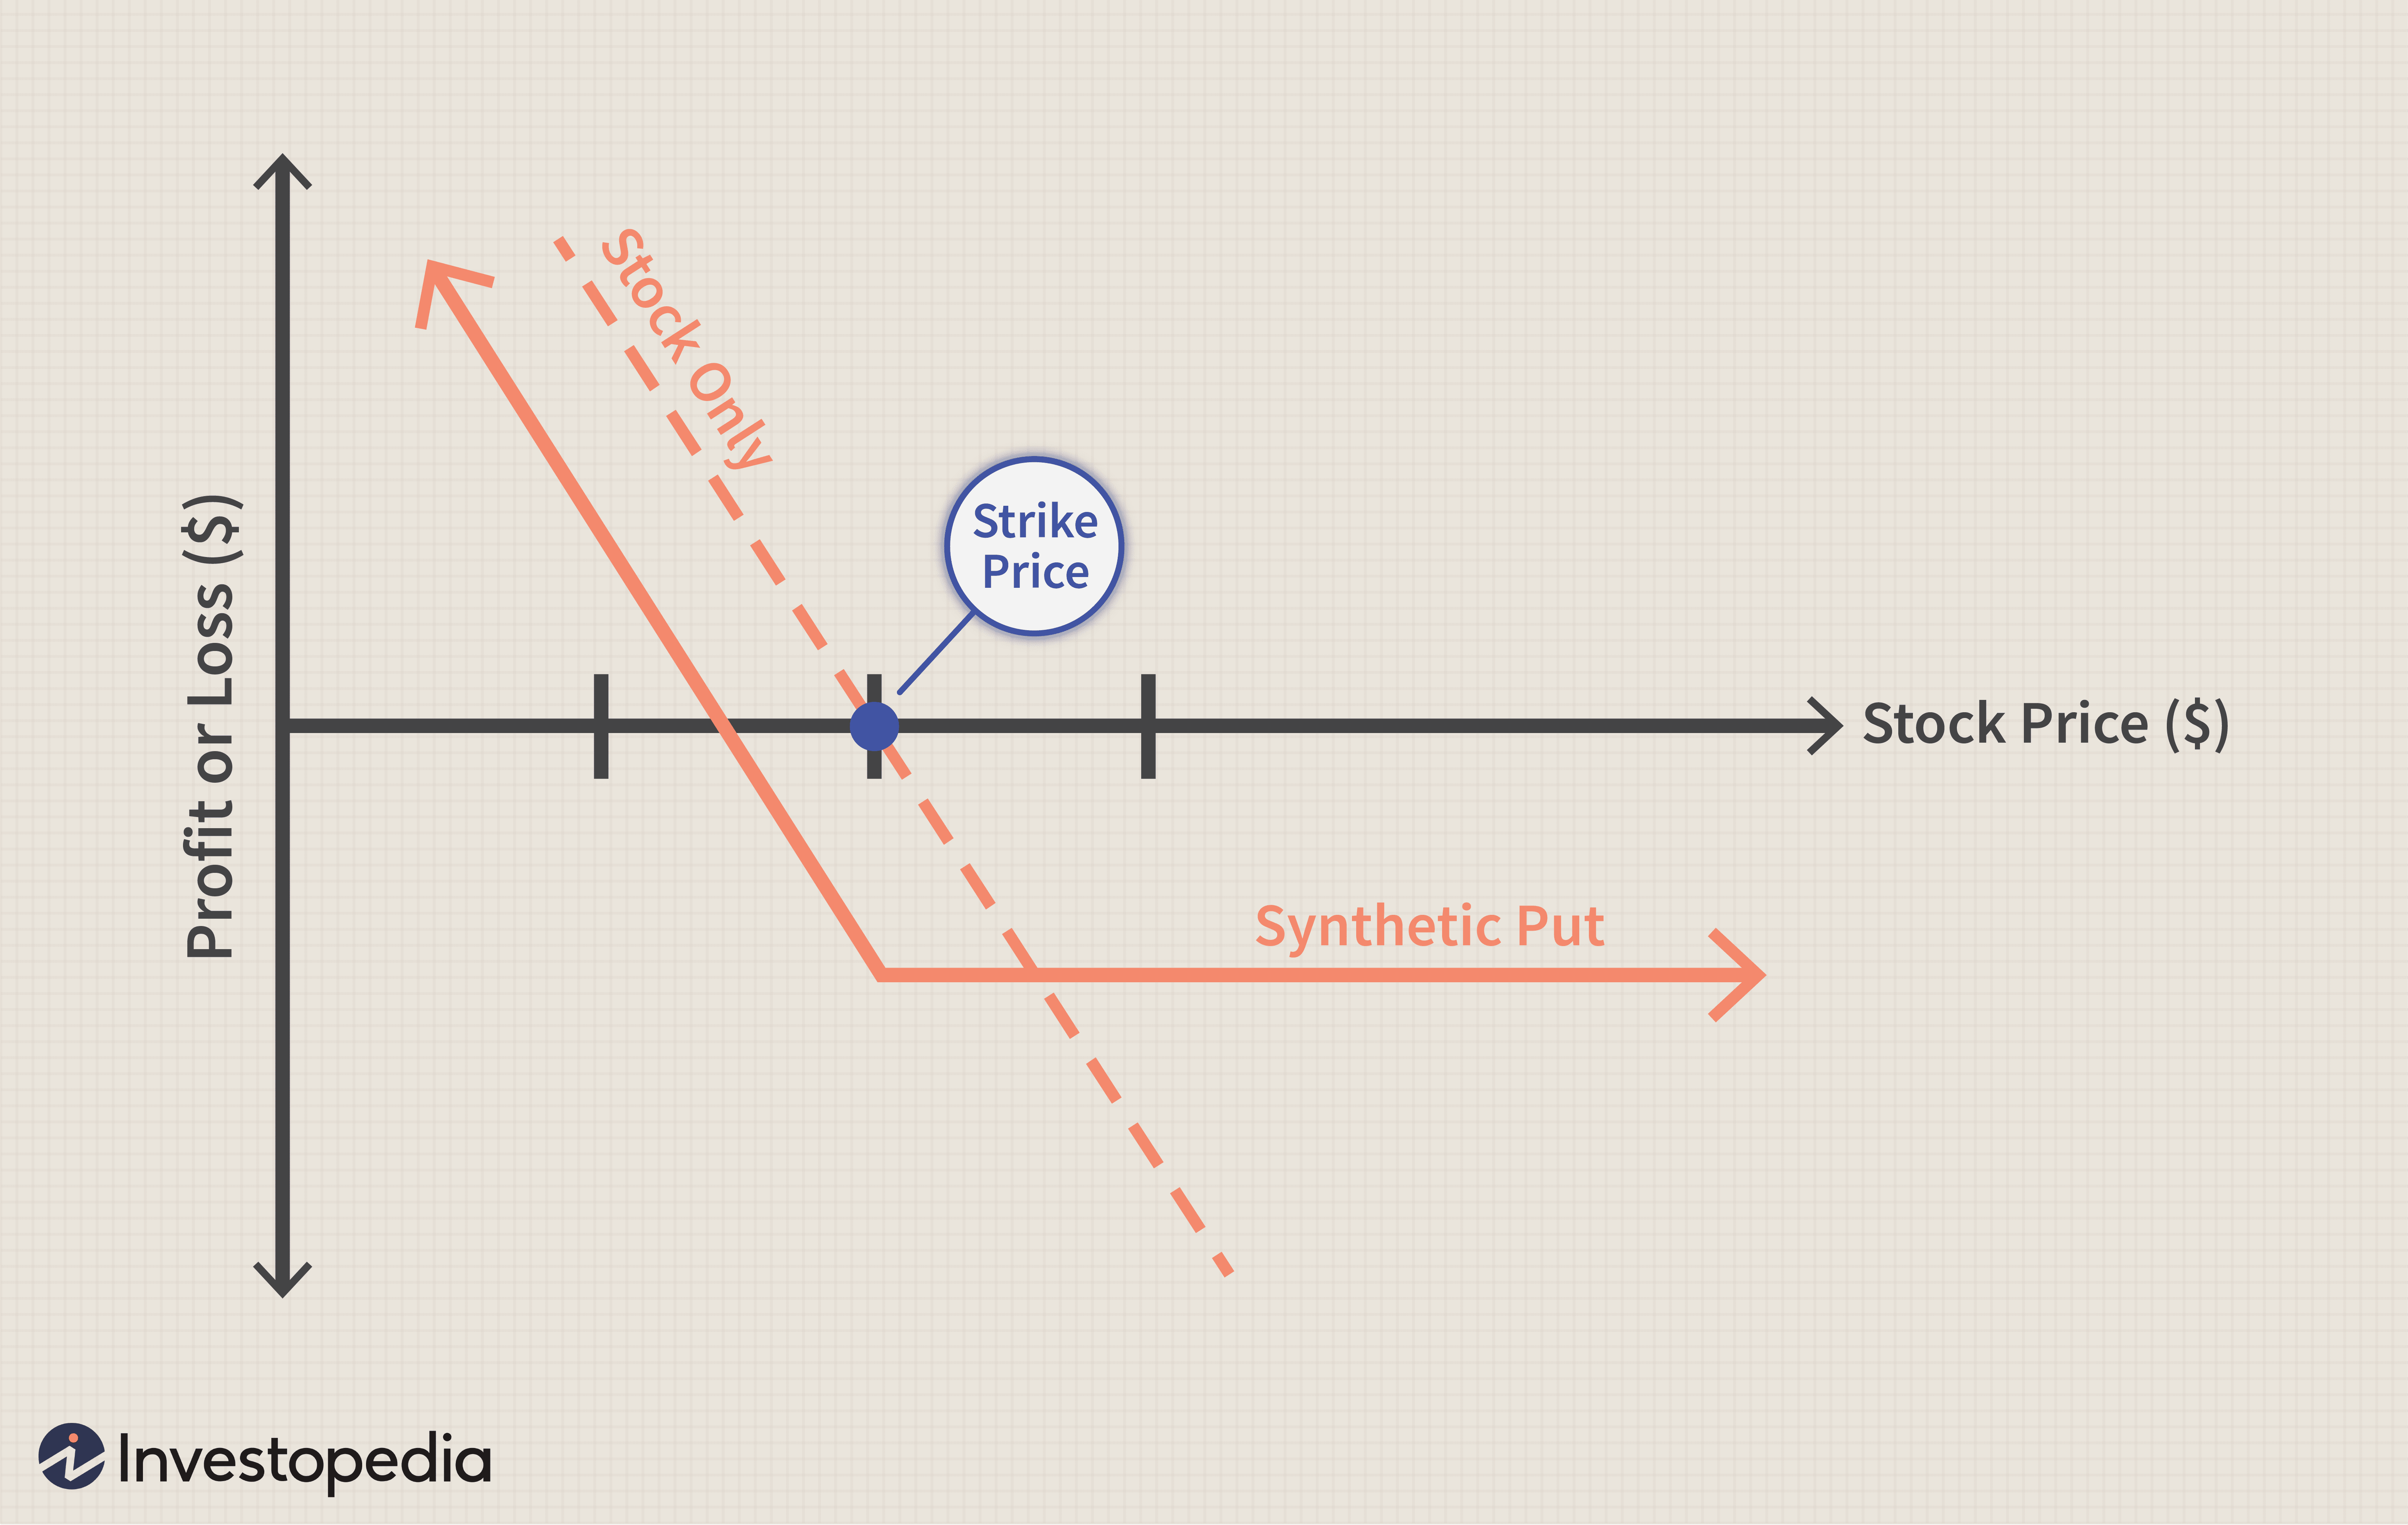 Synthetic Put